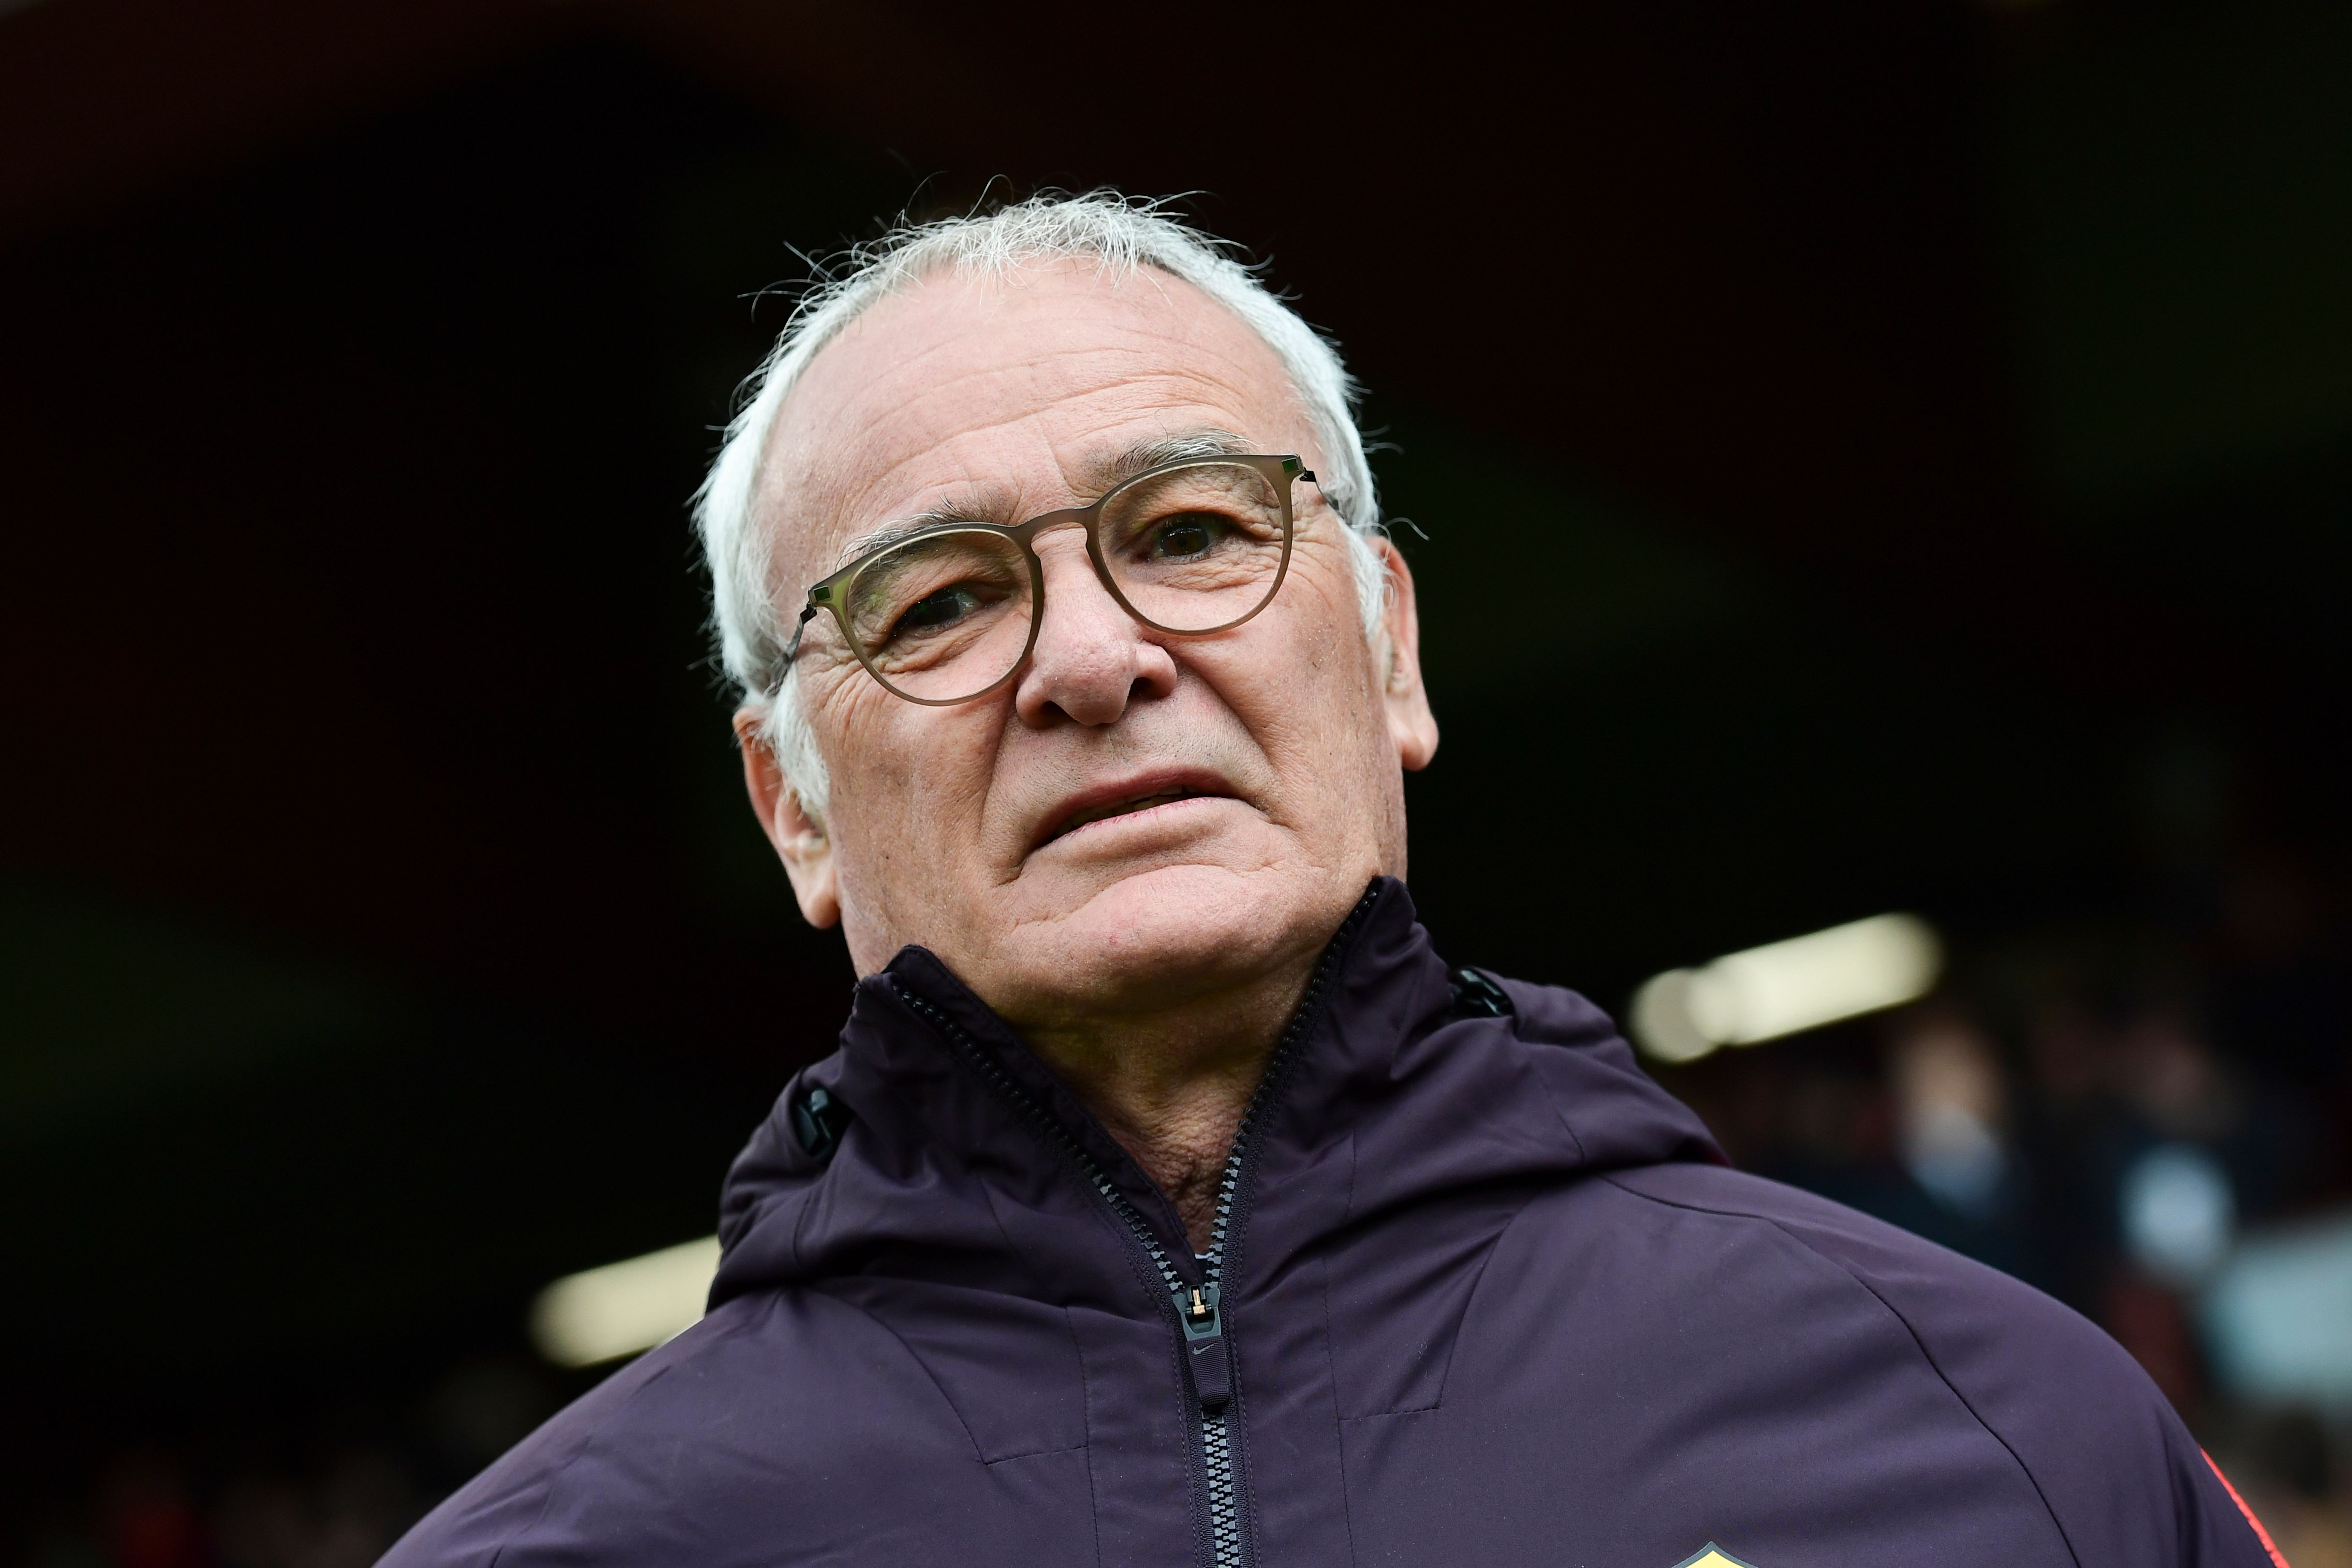 His successor is set to be Ranieri, who has been out of English football for two years